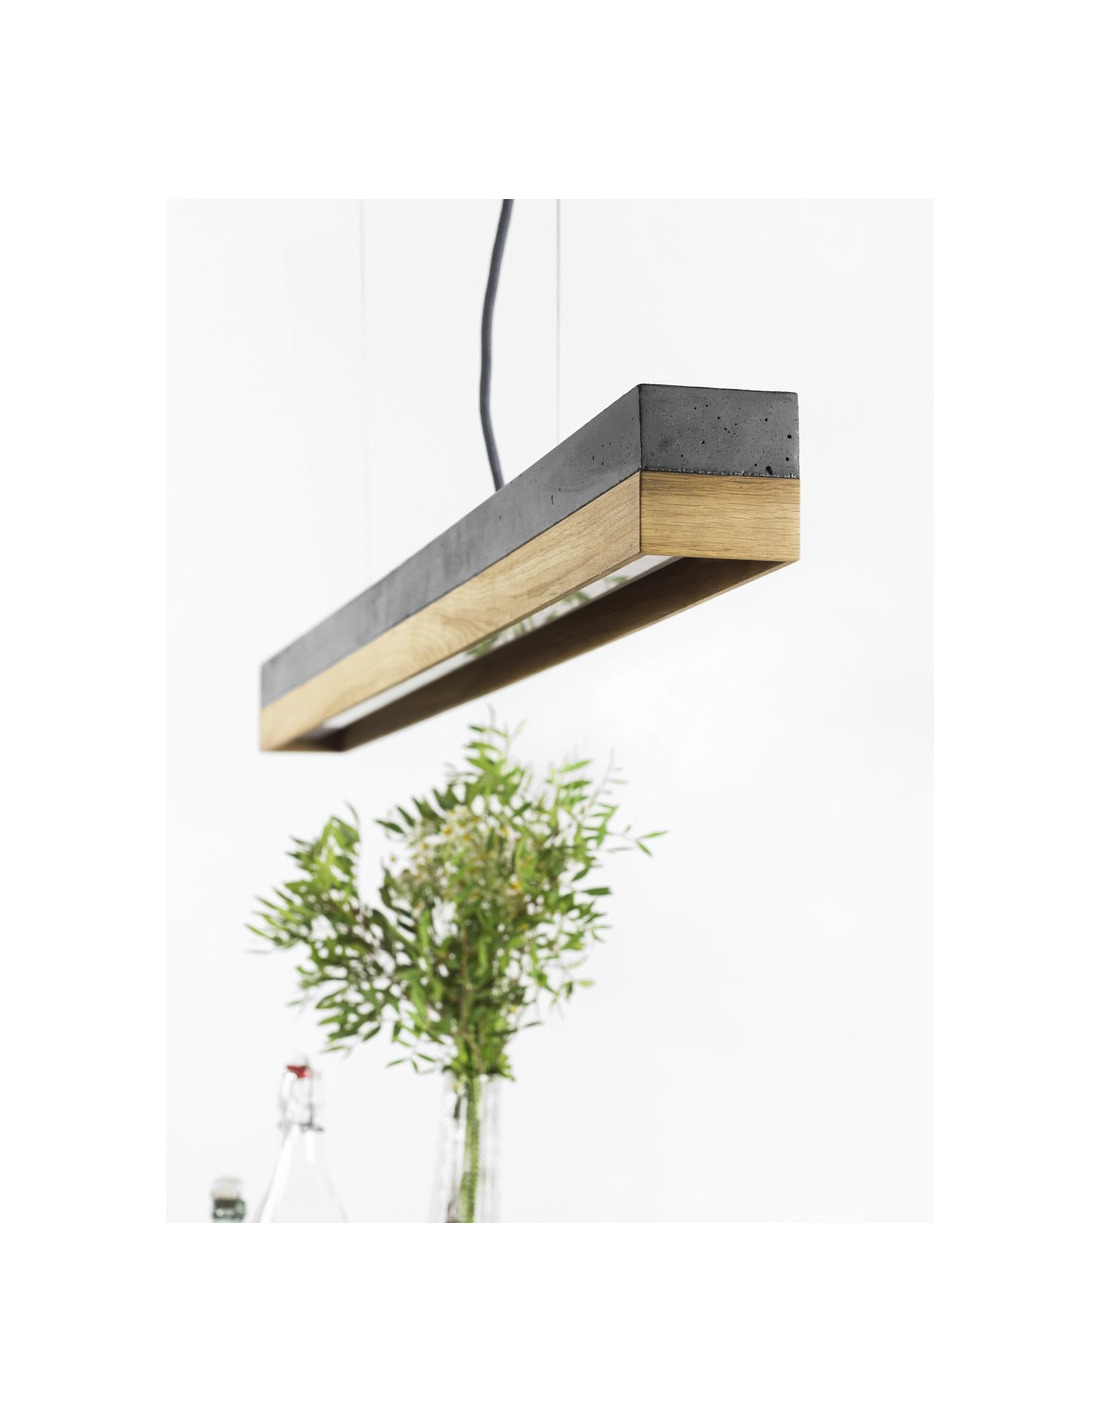 Suspension Design C1 Rectangular Bois ch u00eane Noir en béton Otoko # Suspension Design Bois